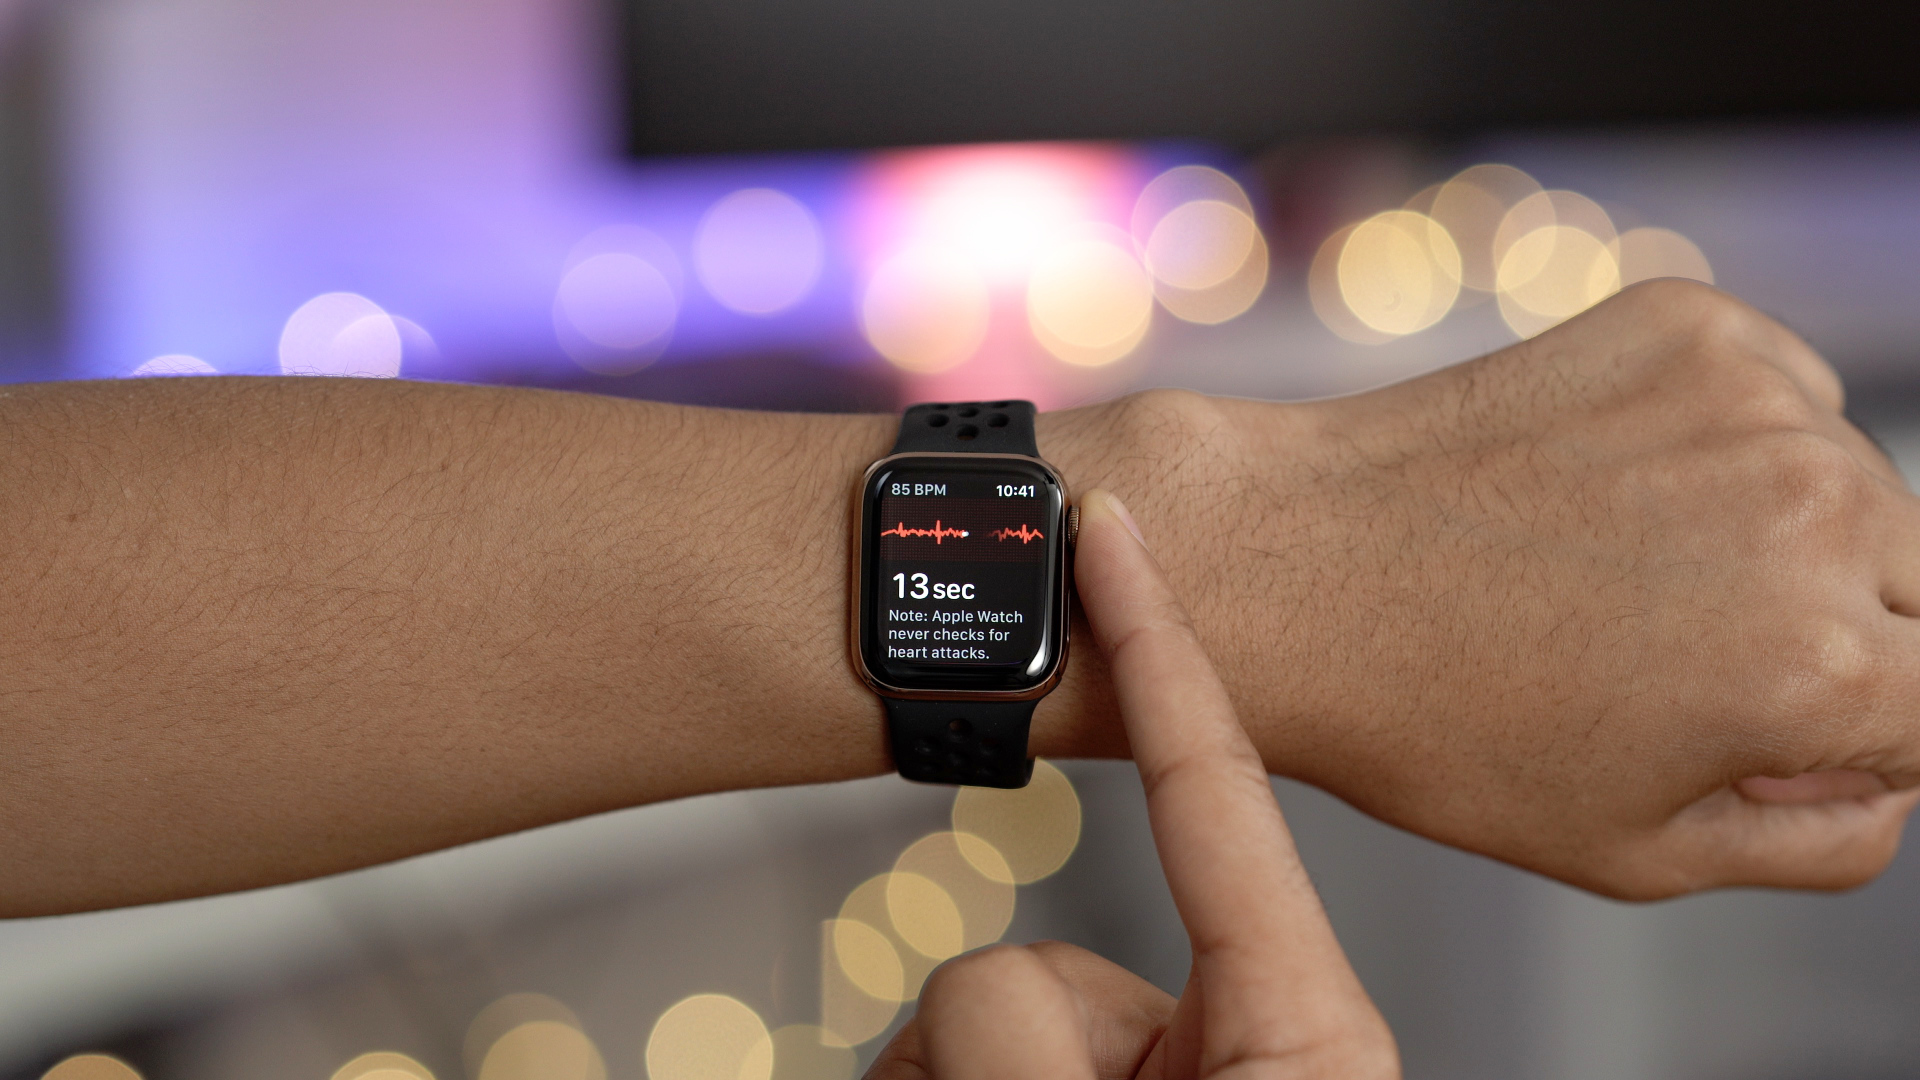 What's new in watchOS 5.1.2 [Video]